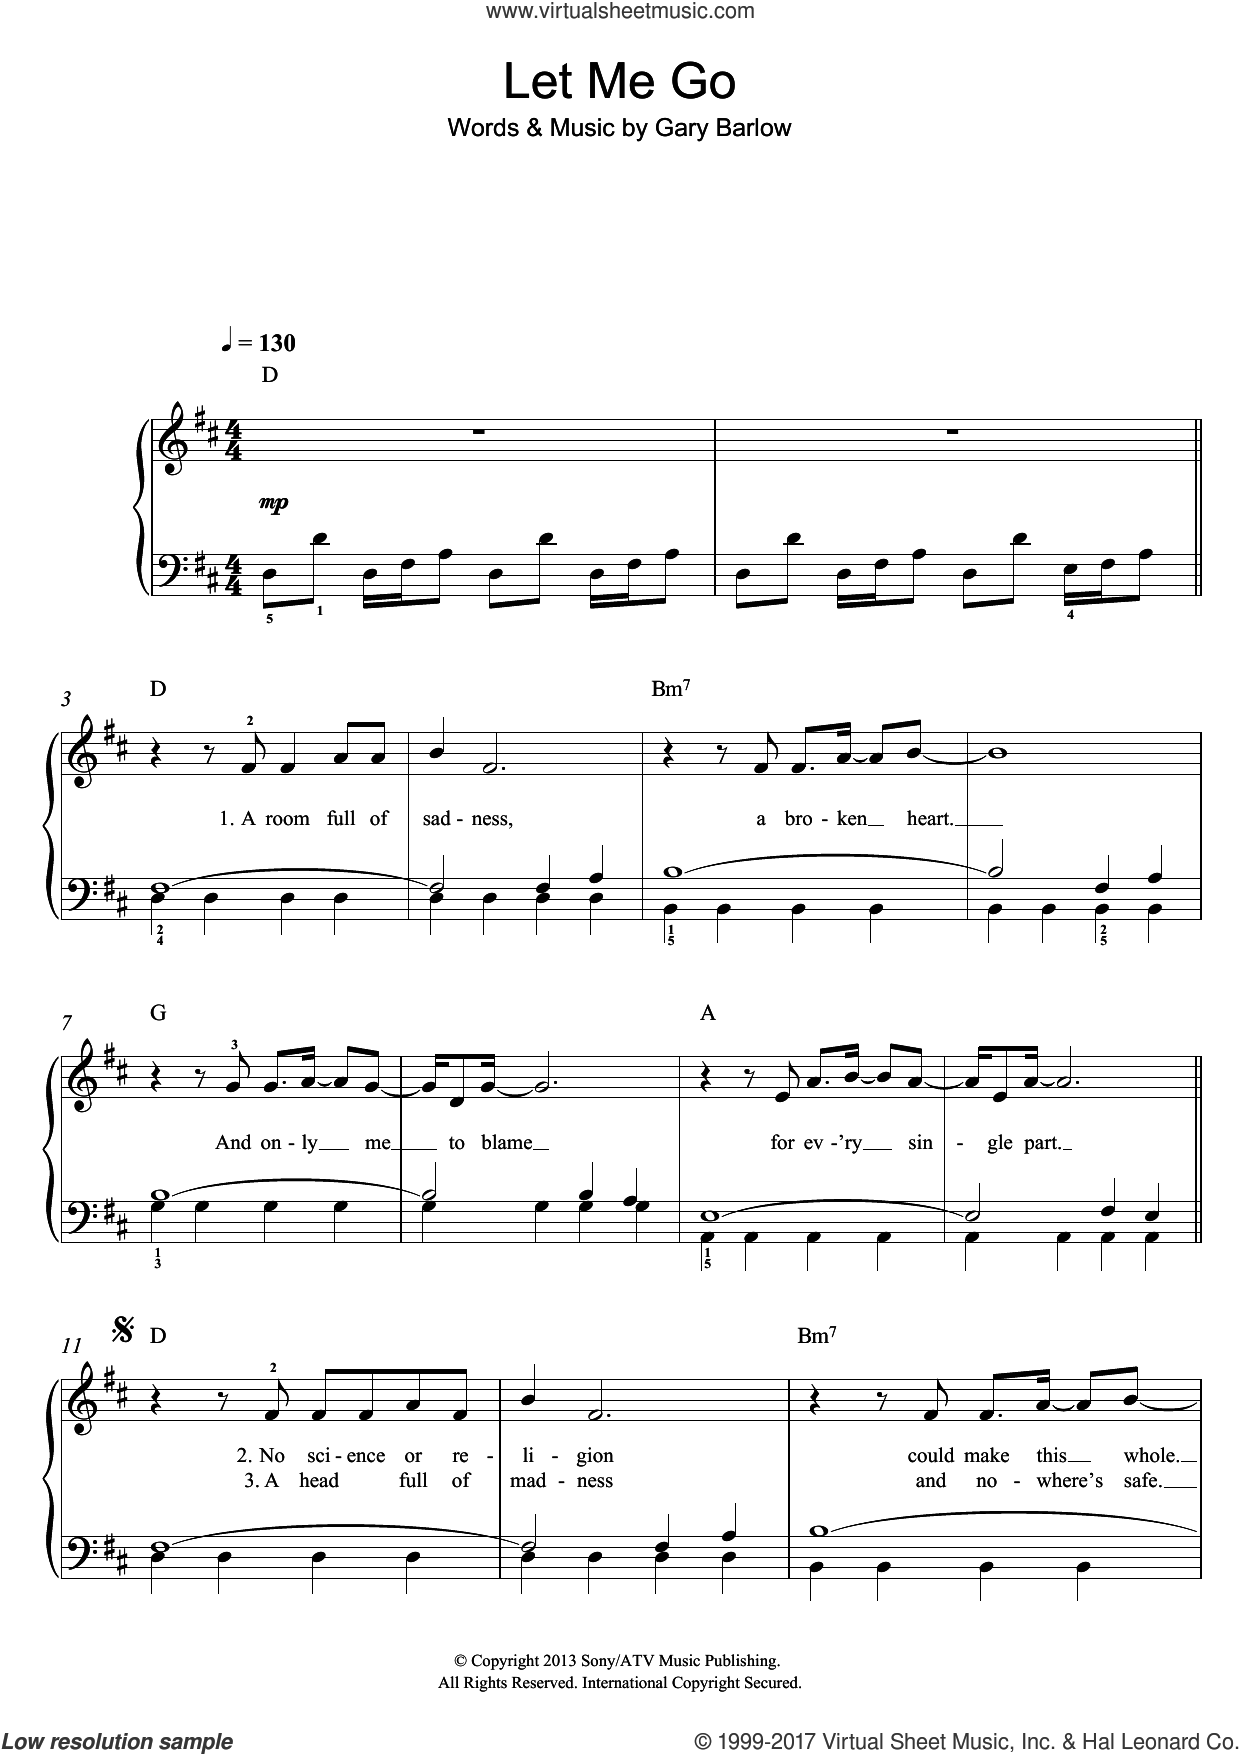 Let Me Go sheet music for piano solo by Gary Barlow, easy skill level